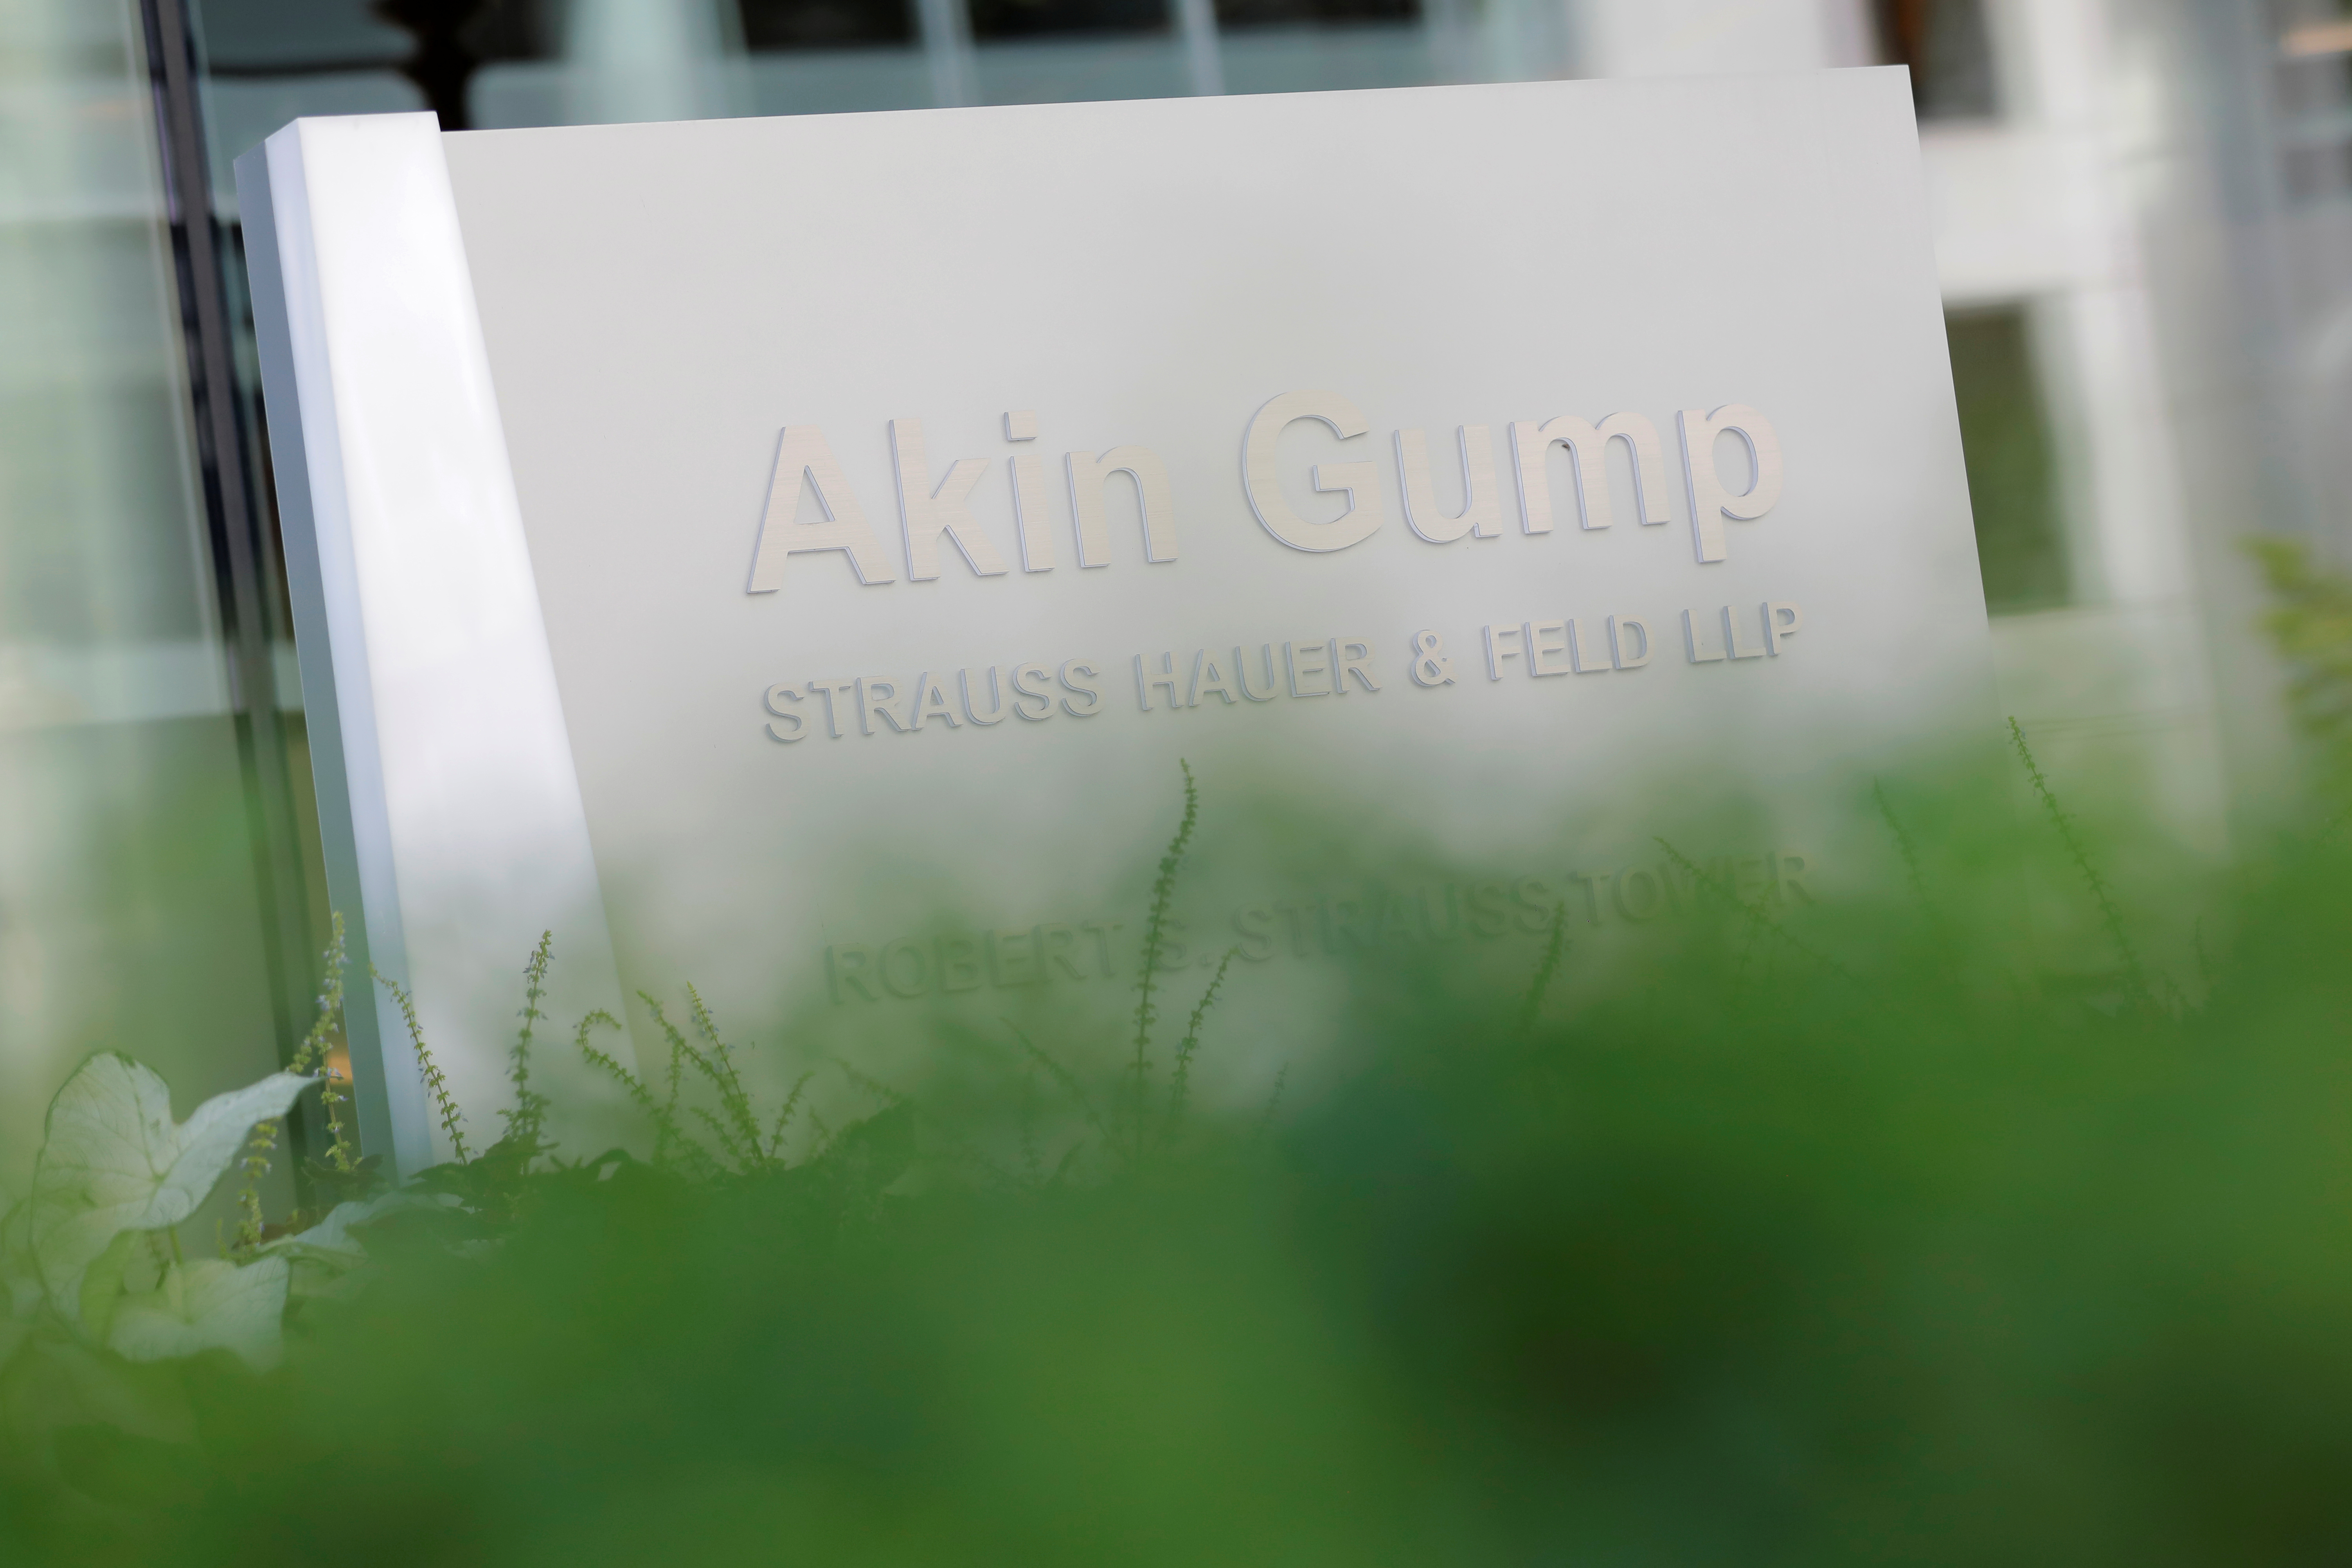 Akin Gump Strauss Hauer & Feld offices in Washington, D.C. REUTERS/Andrew Kelly